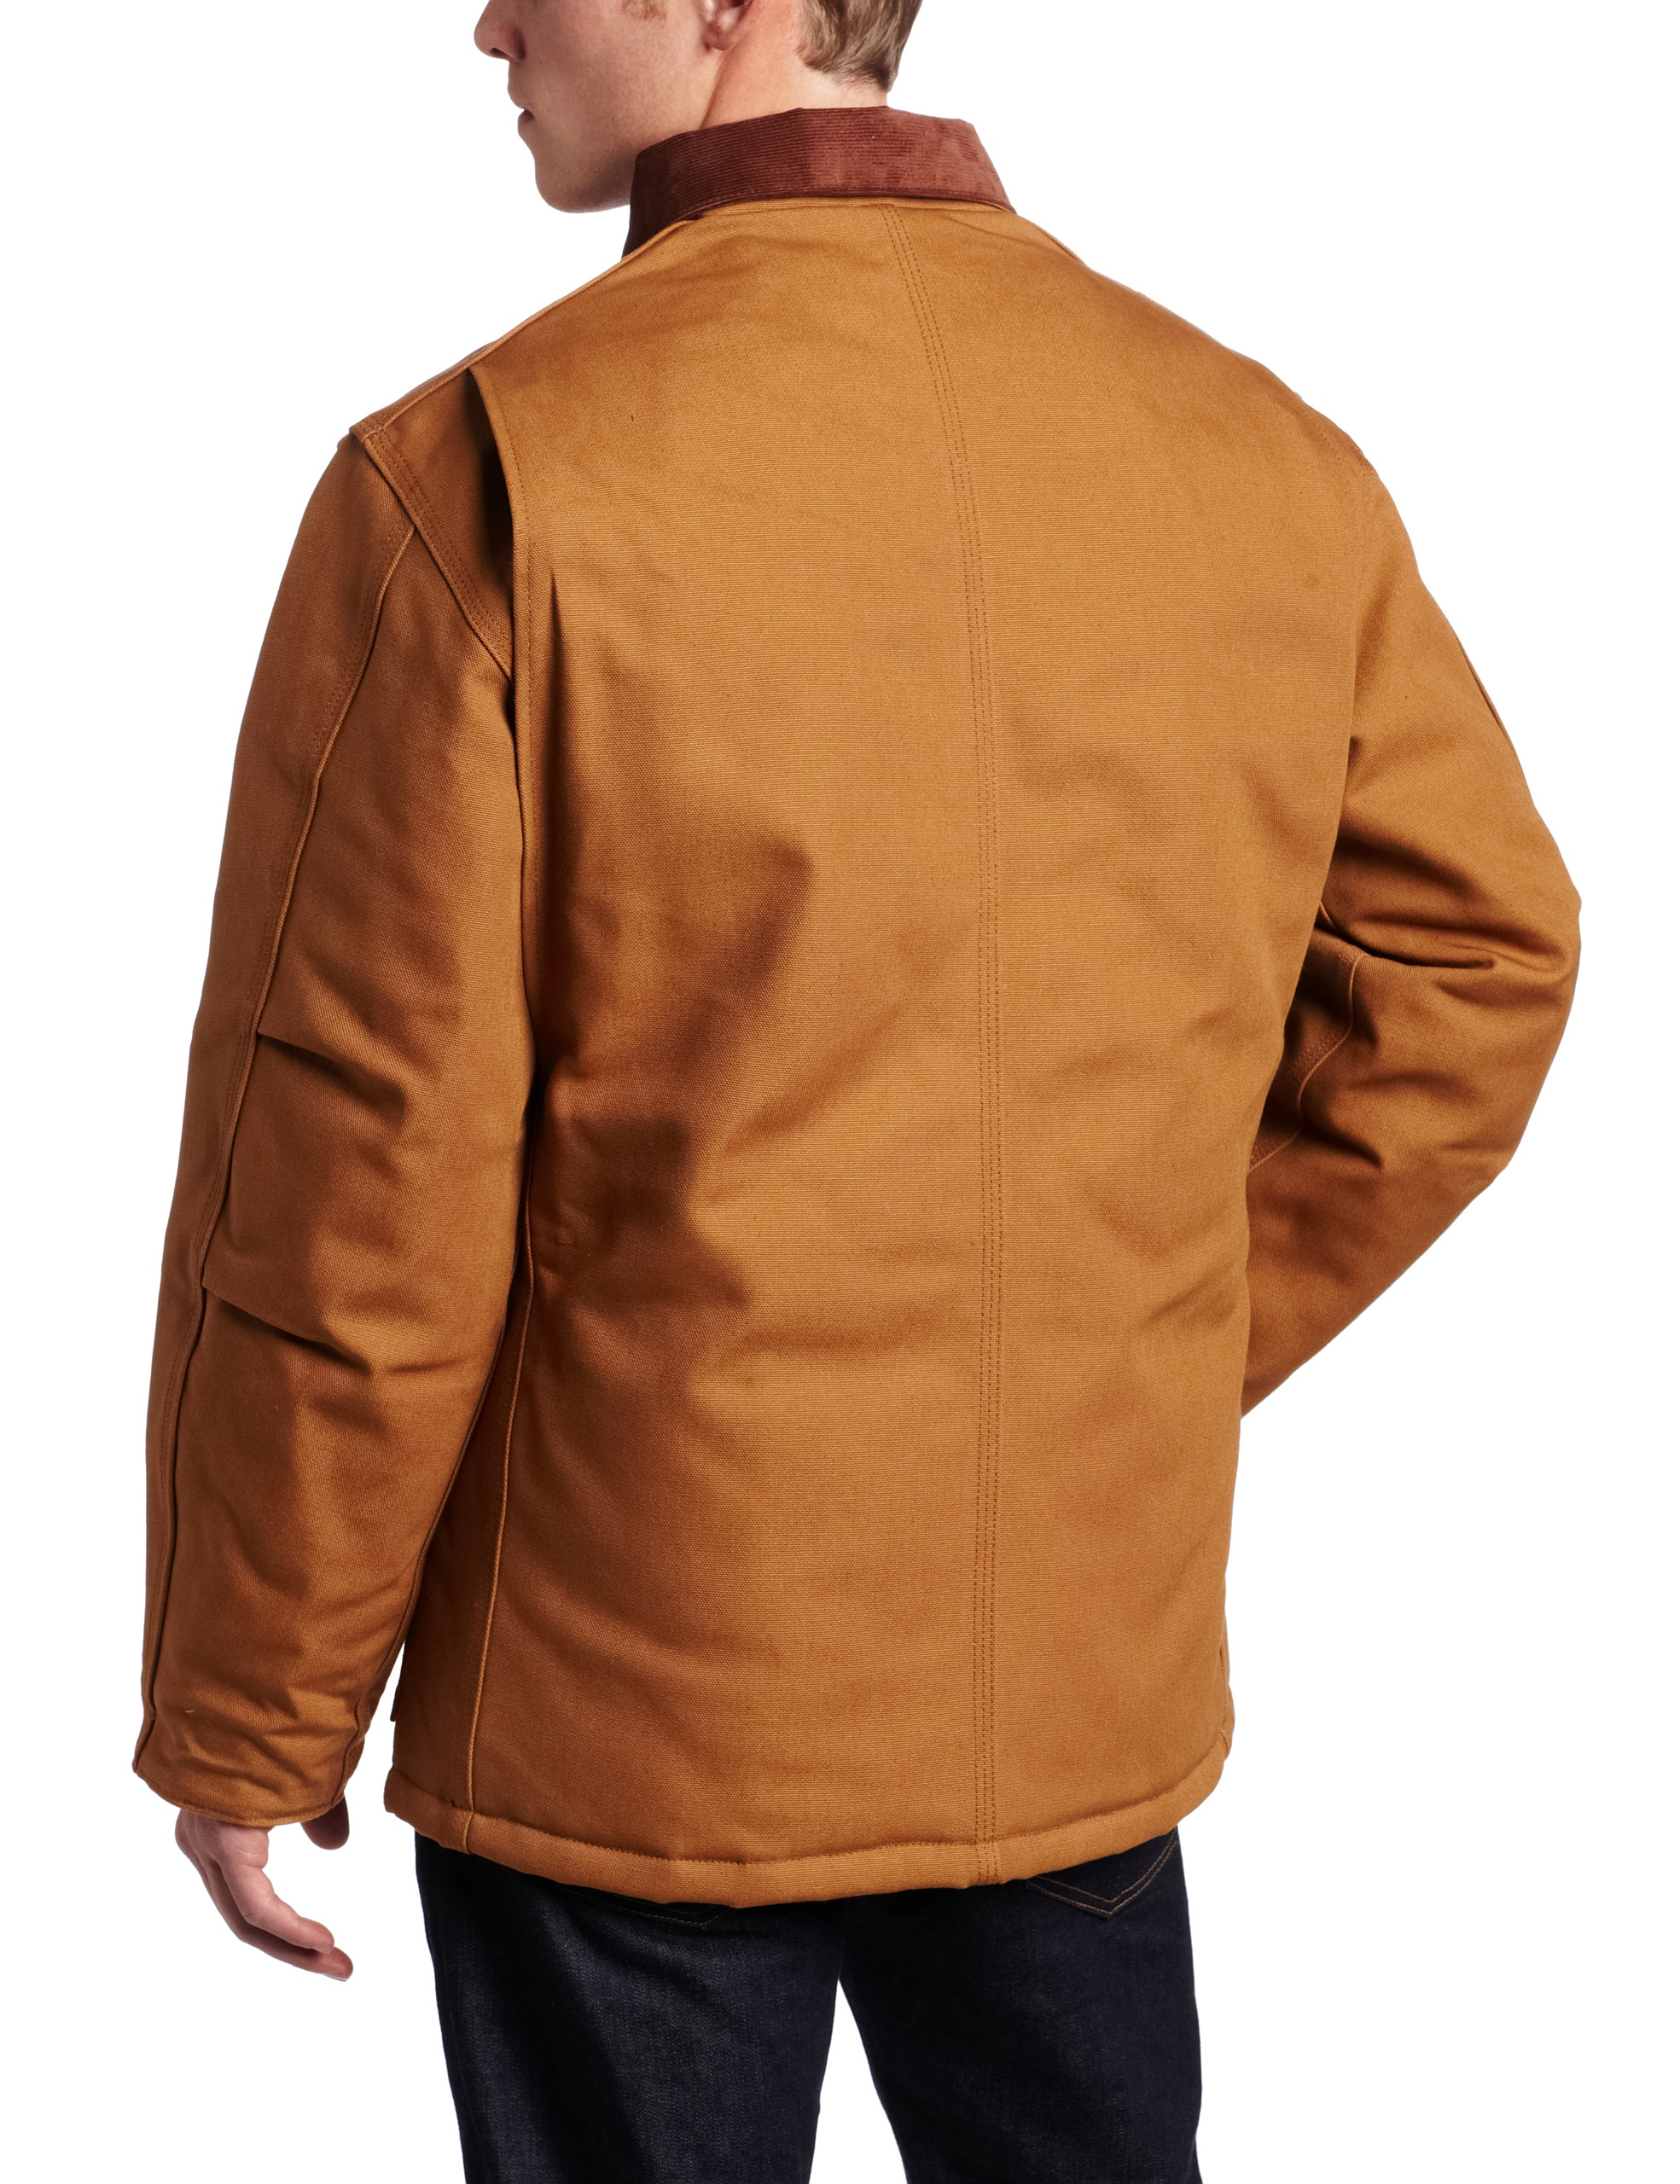 Carhartt Men's Arctic Quilt Lined Duck Traditional Coat C003,Brown,Large by Carhartt (Image #2)